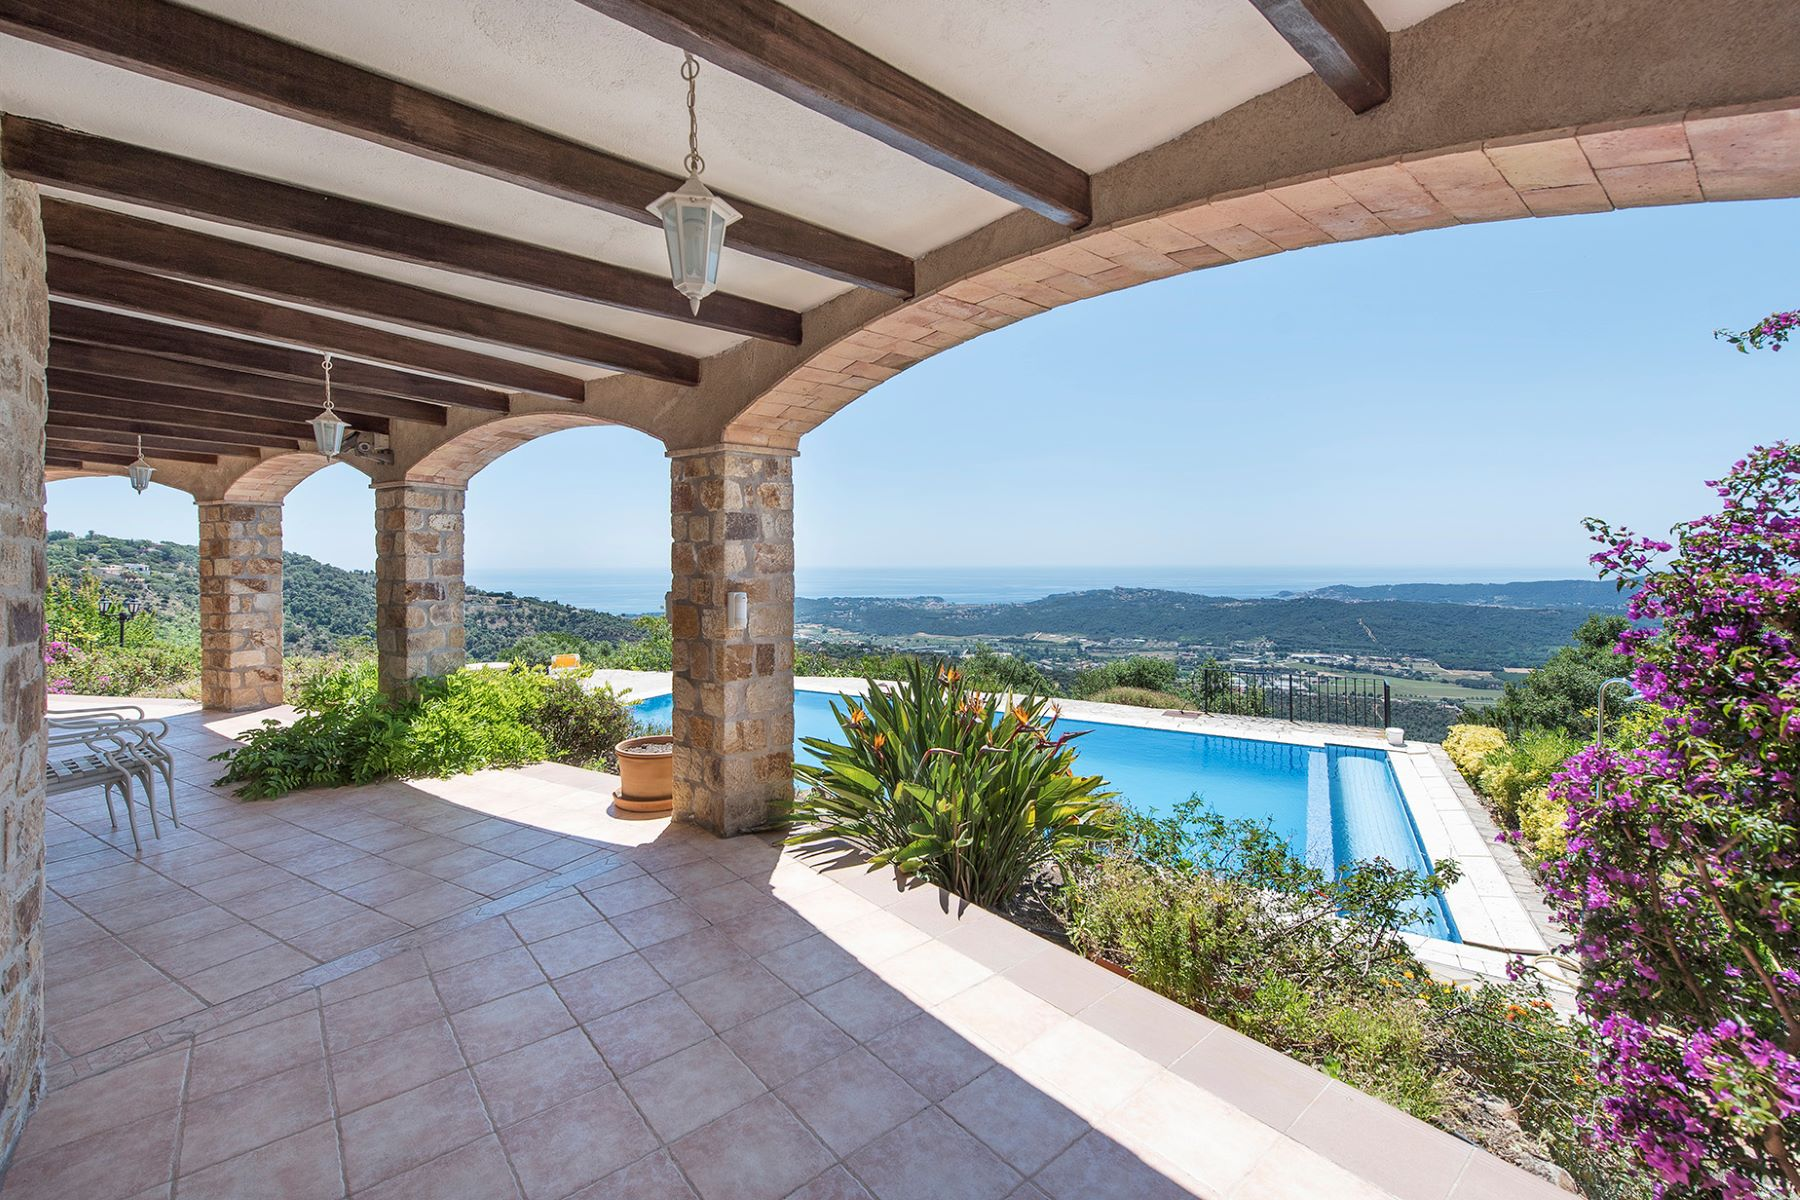 Maison unifamiliale pour l Vente à Welcoming house with stunning sea views Playa De Aro, Costa Brava, 17250 Espagne